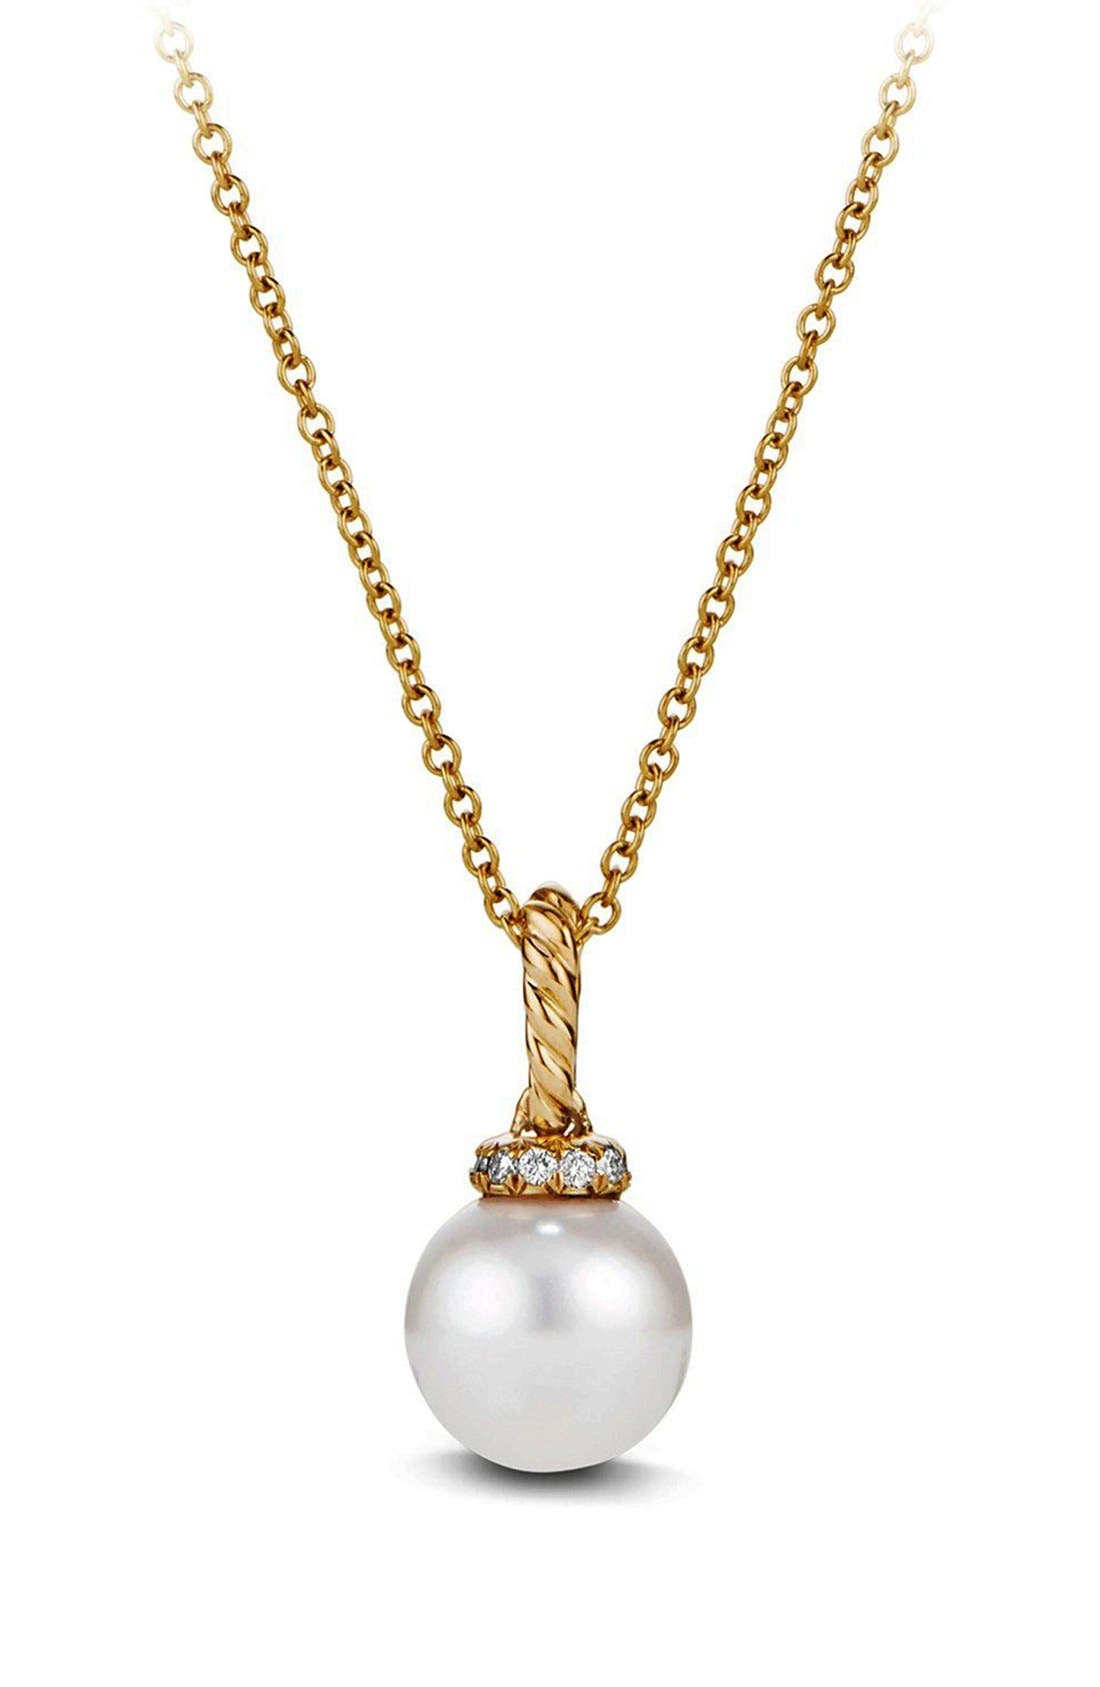 'Solari' Pendant Necklace with Pearls and Diamonds in 18K Gold,                             Main thumbnail 1, color,                             PEARL